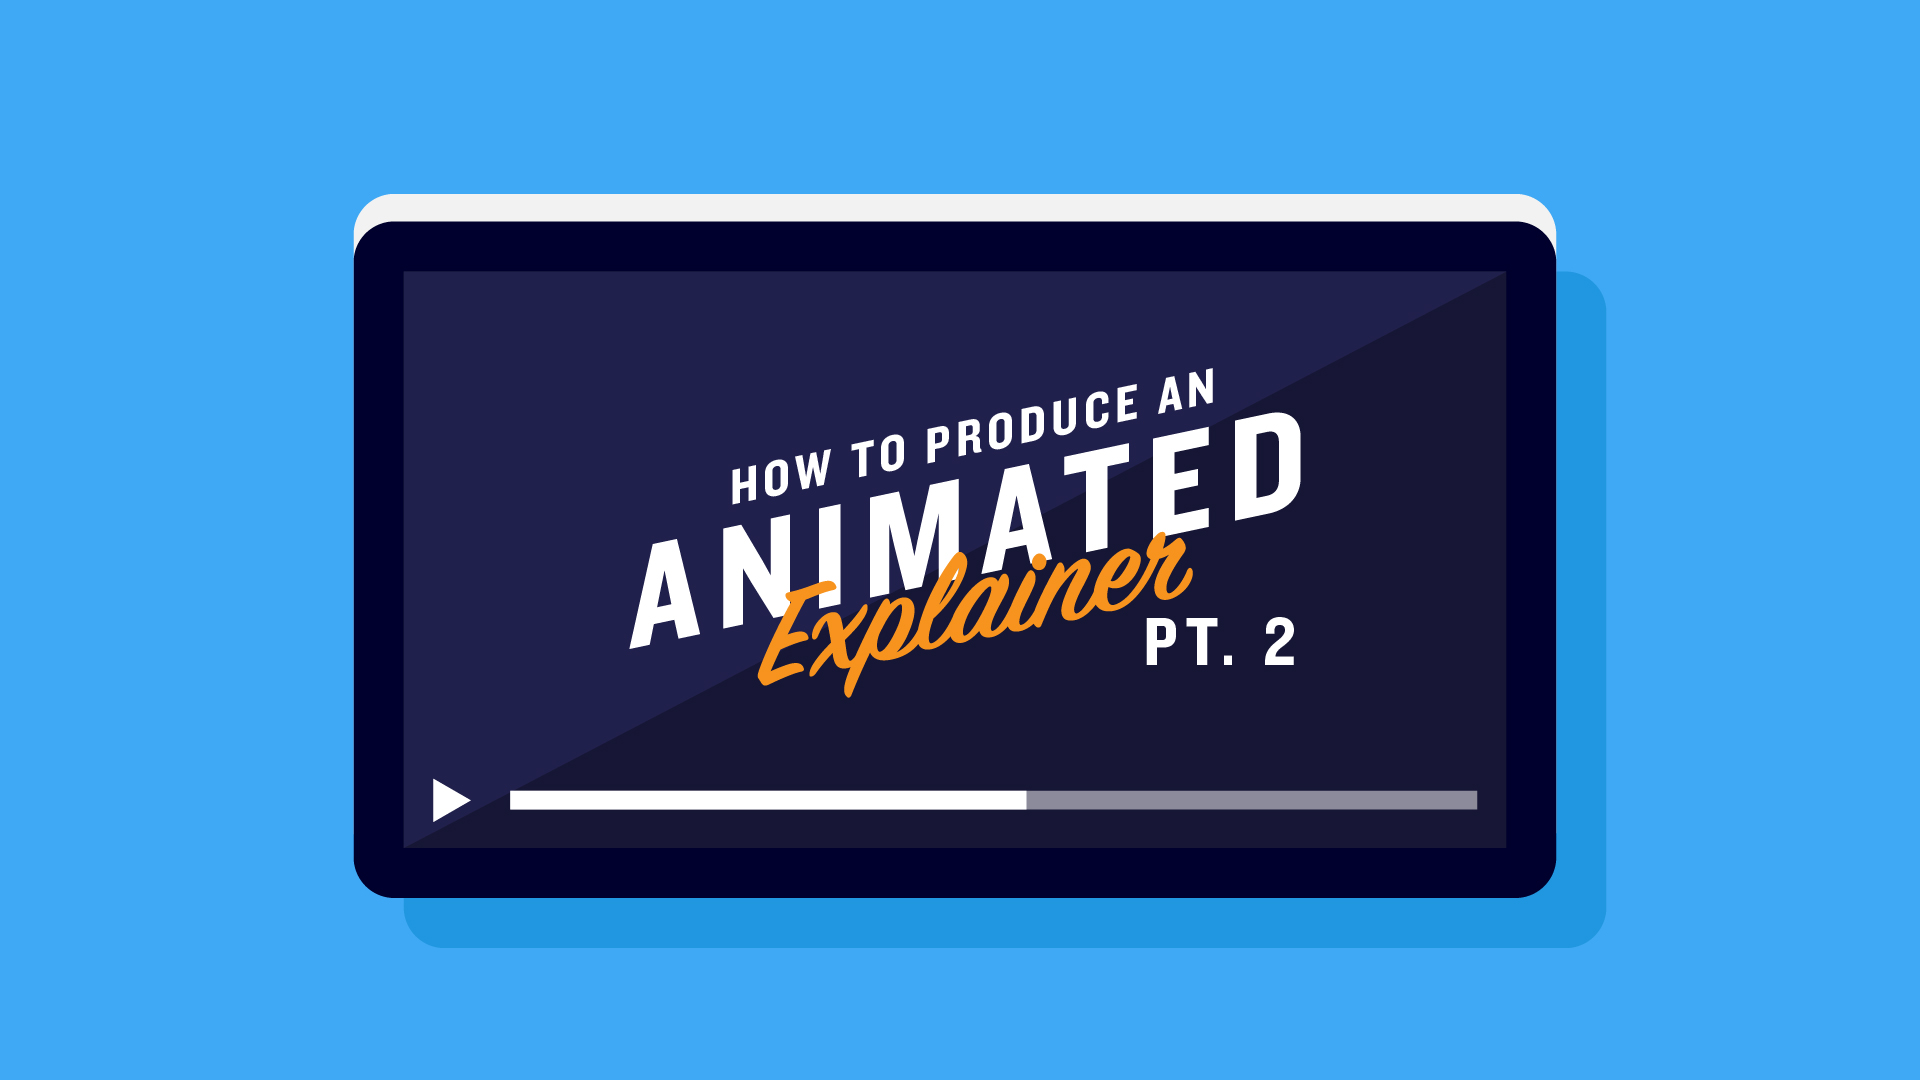 How To Produce an Animated Explainer Video for Your Business (Part 2 - What To Expect)